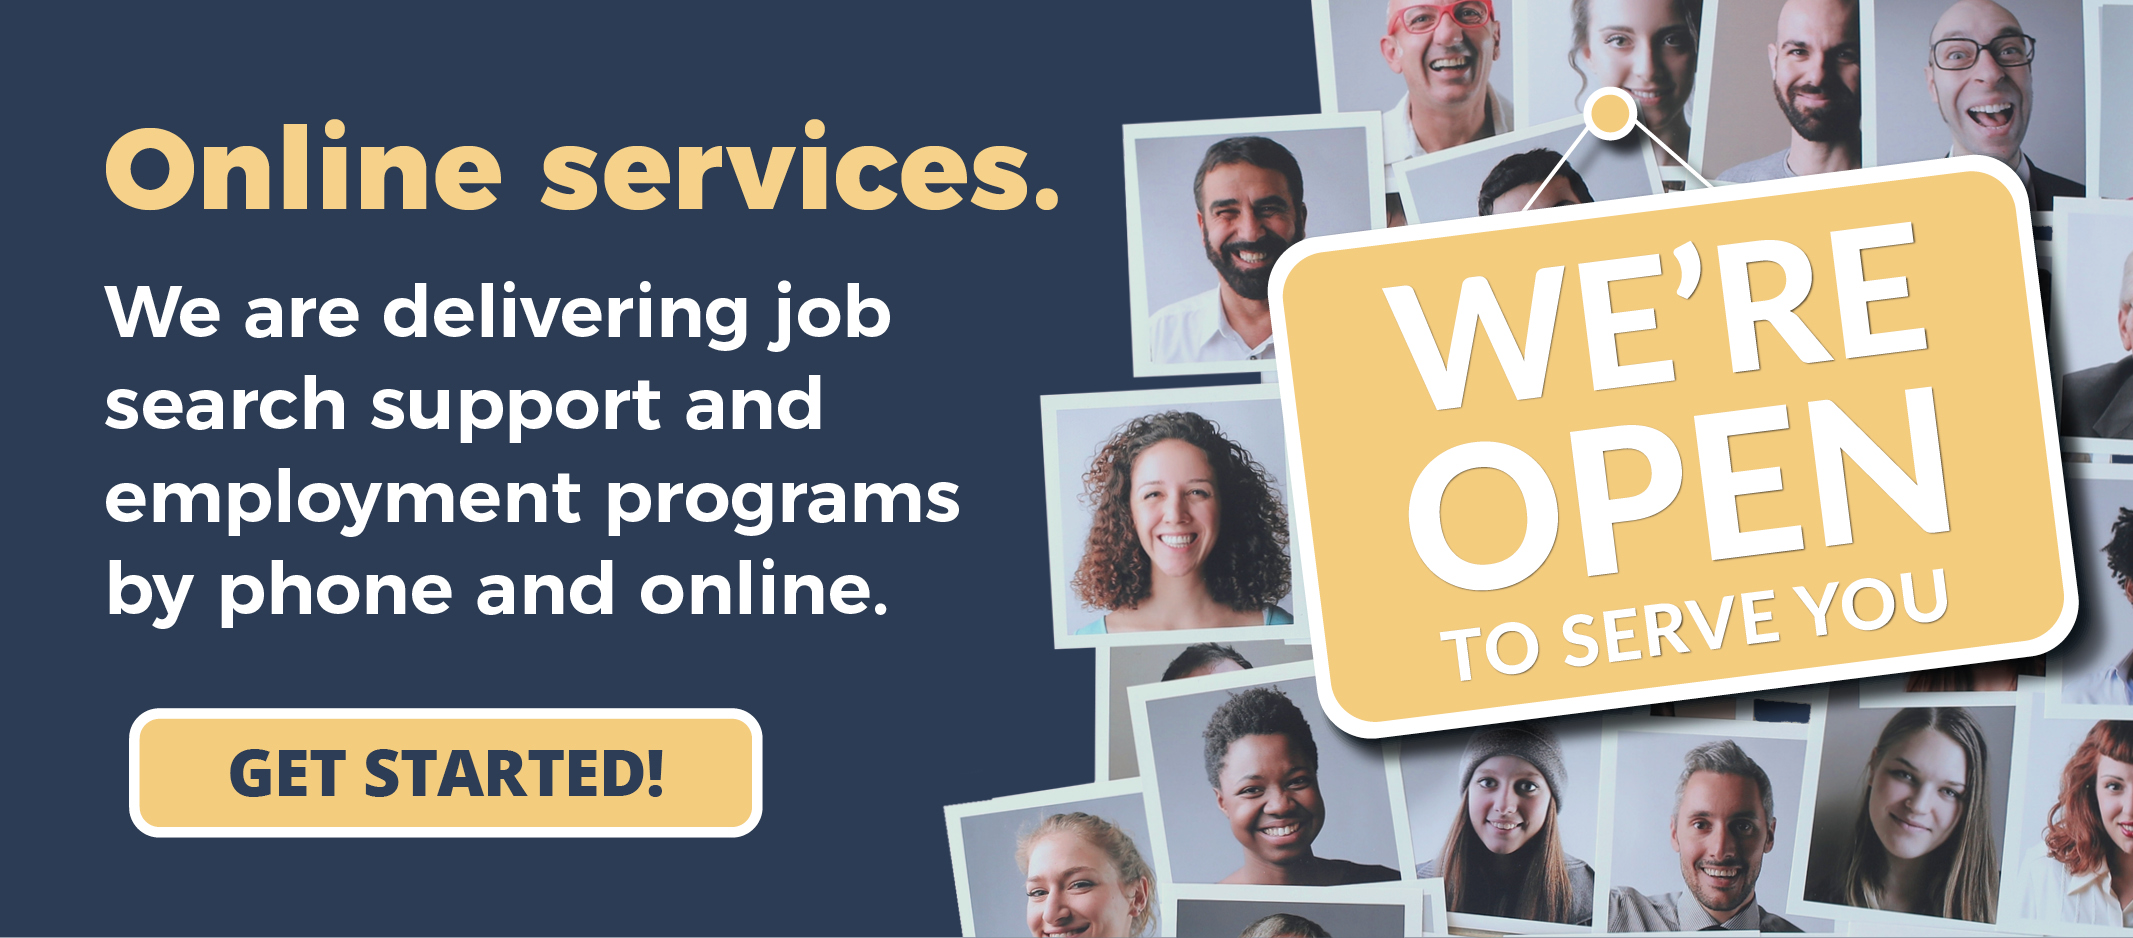 We're Open sign. Offering Online Job search support and employment programs by phone and online